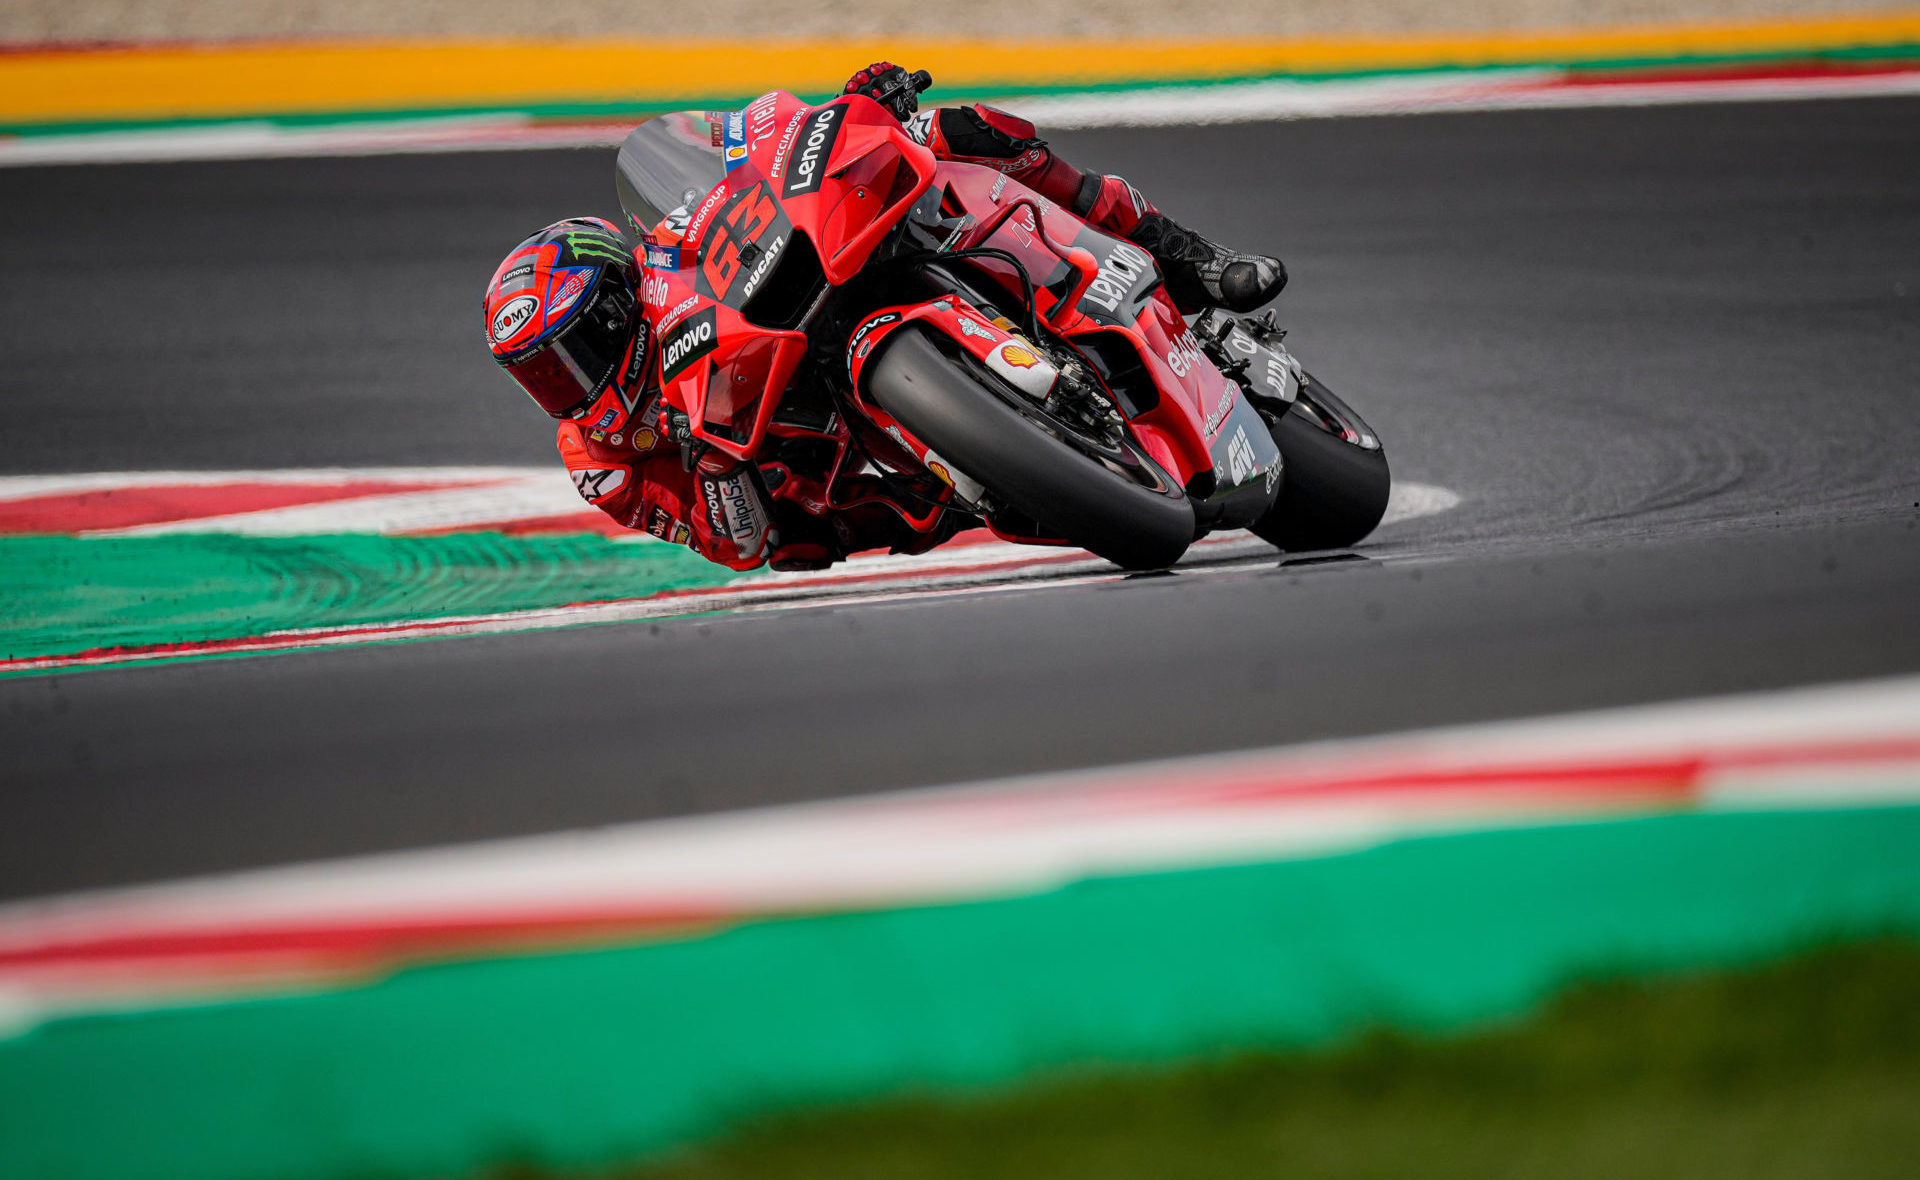 The lap time Francesco Bagnaia (63) turned on Day One ended up being fastest overall during the two day MotoGP test at Misano. Photo courtesy Ducati.